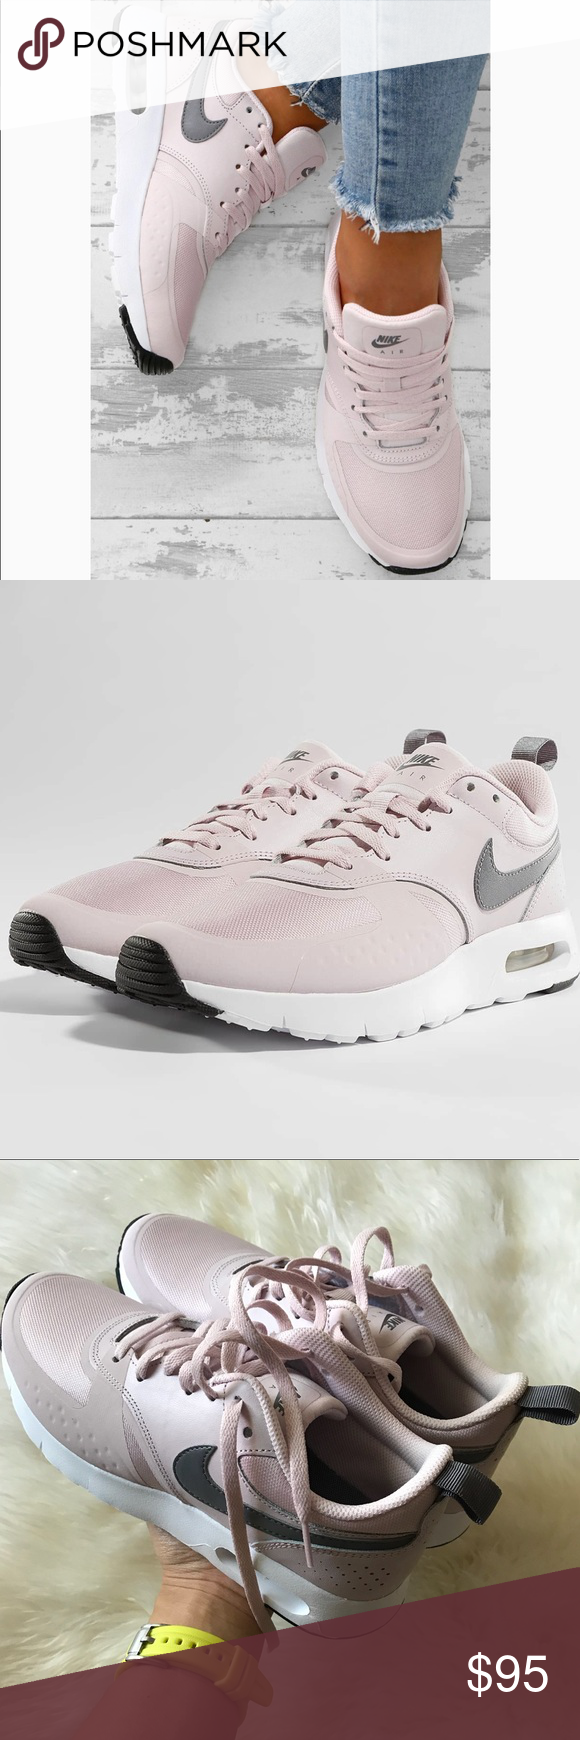 outlet store 62e71 4247d Nike air max vision sneakers Nike air max vision sneakers New with box,  without lid Size 5Y - ( women s 6.5 ) Barely rose gunsmoke white Nike Shoes  Sneakers